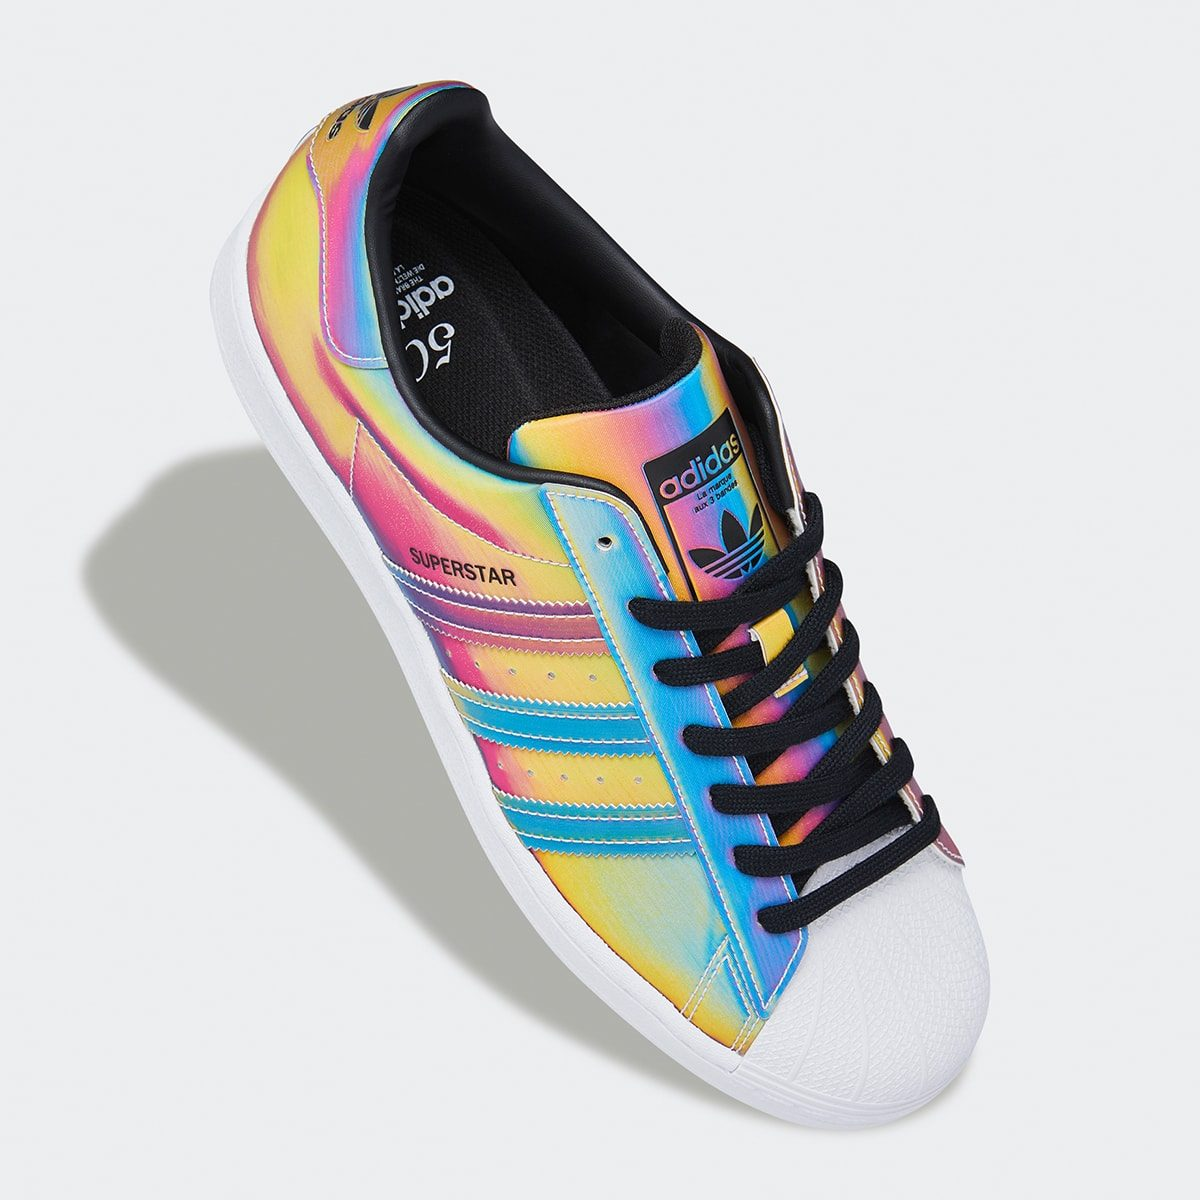 """The adidas Superstar Appears in """"Rainbow Iridescent"""""""